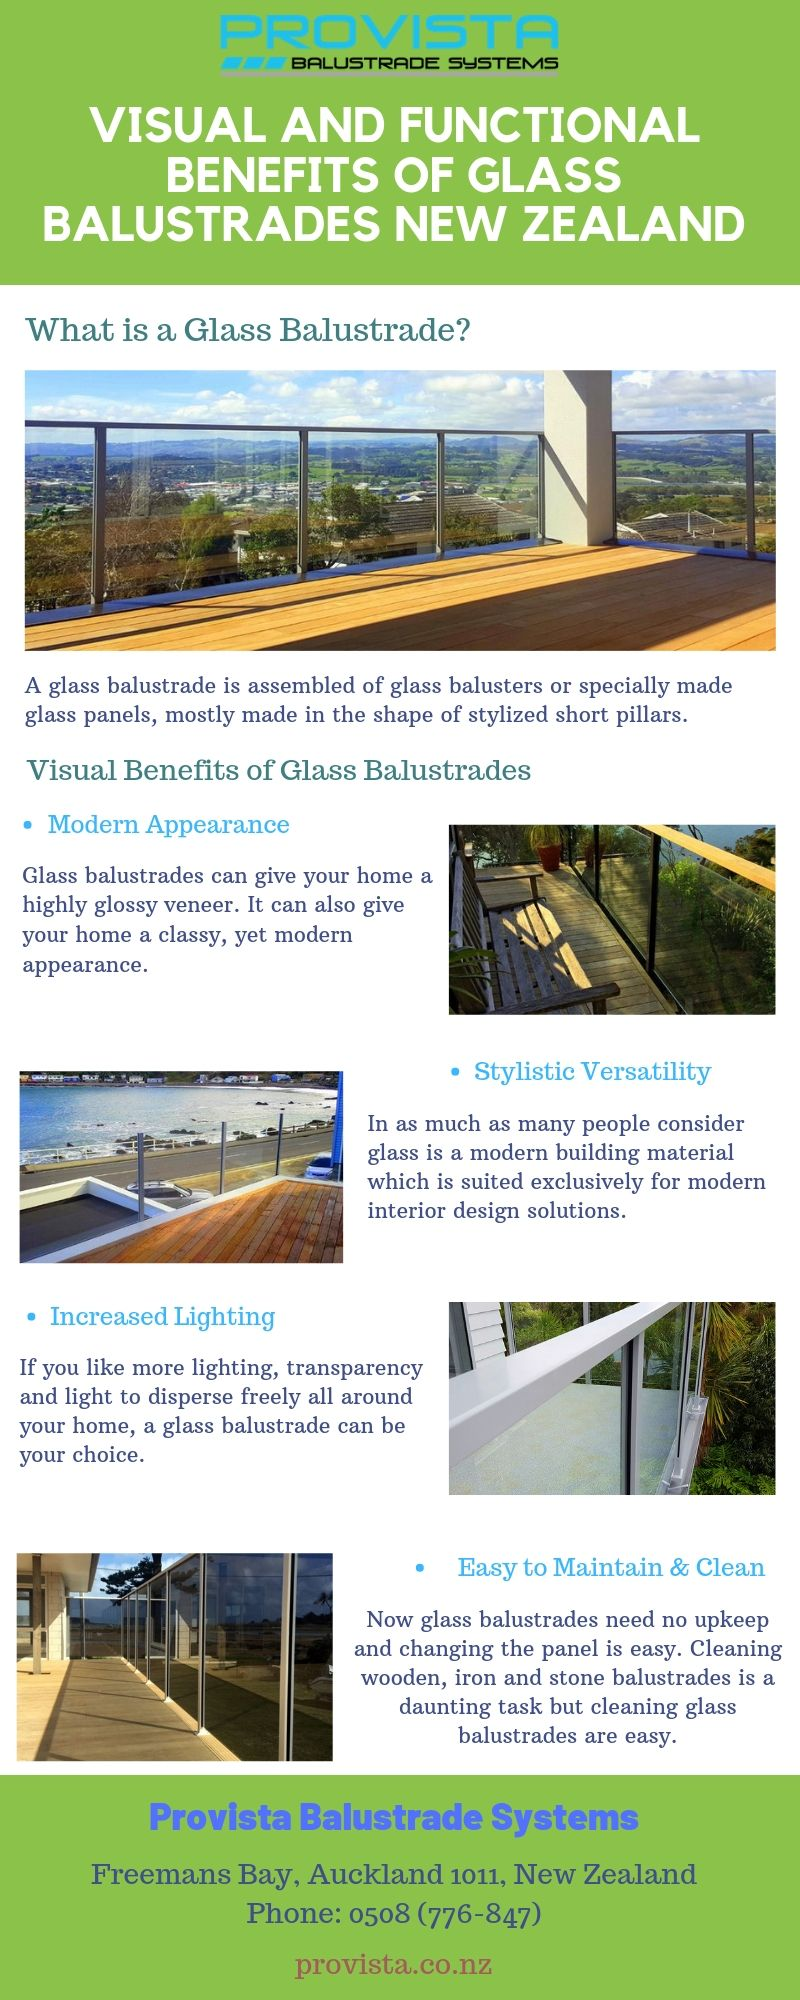 Visual and Functional Benefits of Glass Balustrades New Zealand The benefits of using glass balustrades New Zealand are many. Glass balustrade improves your home's look and increases your home's value on the seller's market. For more details, visit this link: https://bit.ly/2XRVohg